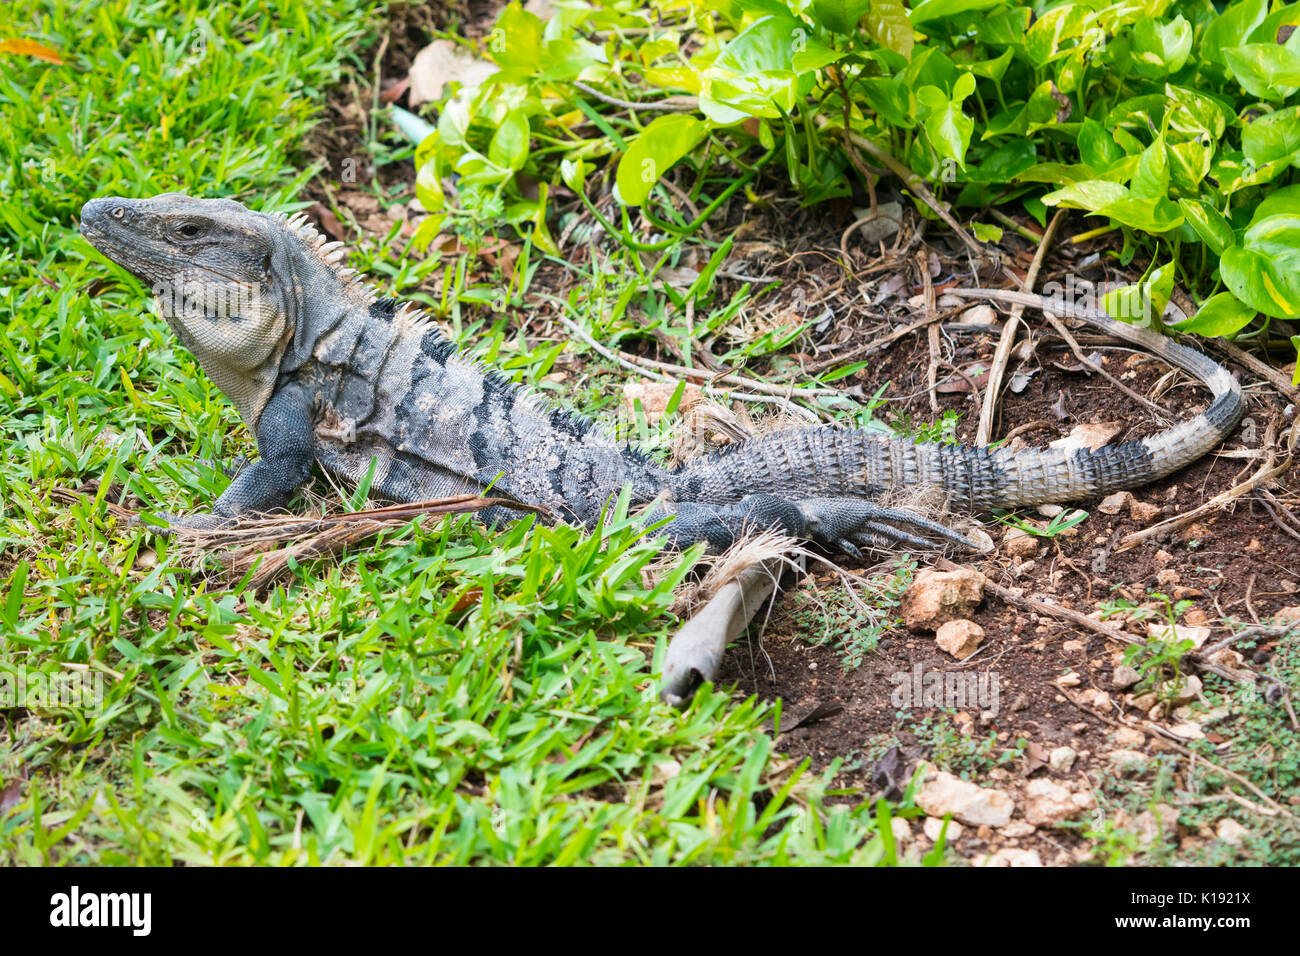 Relaxed Iguana in Mexico - Stock Image